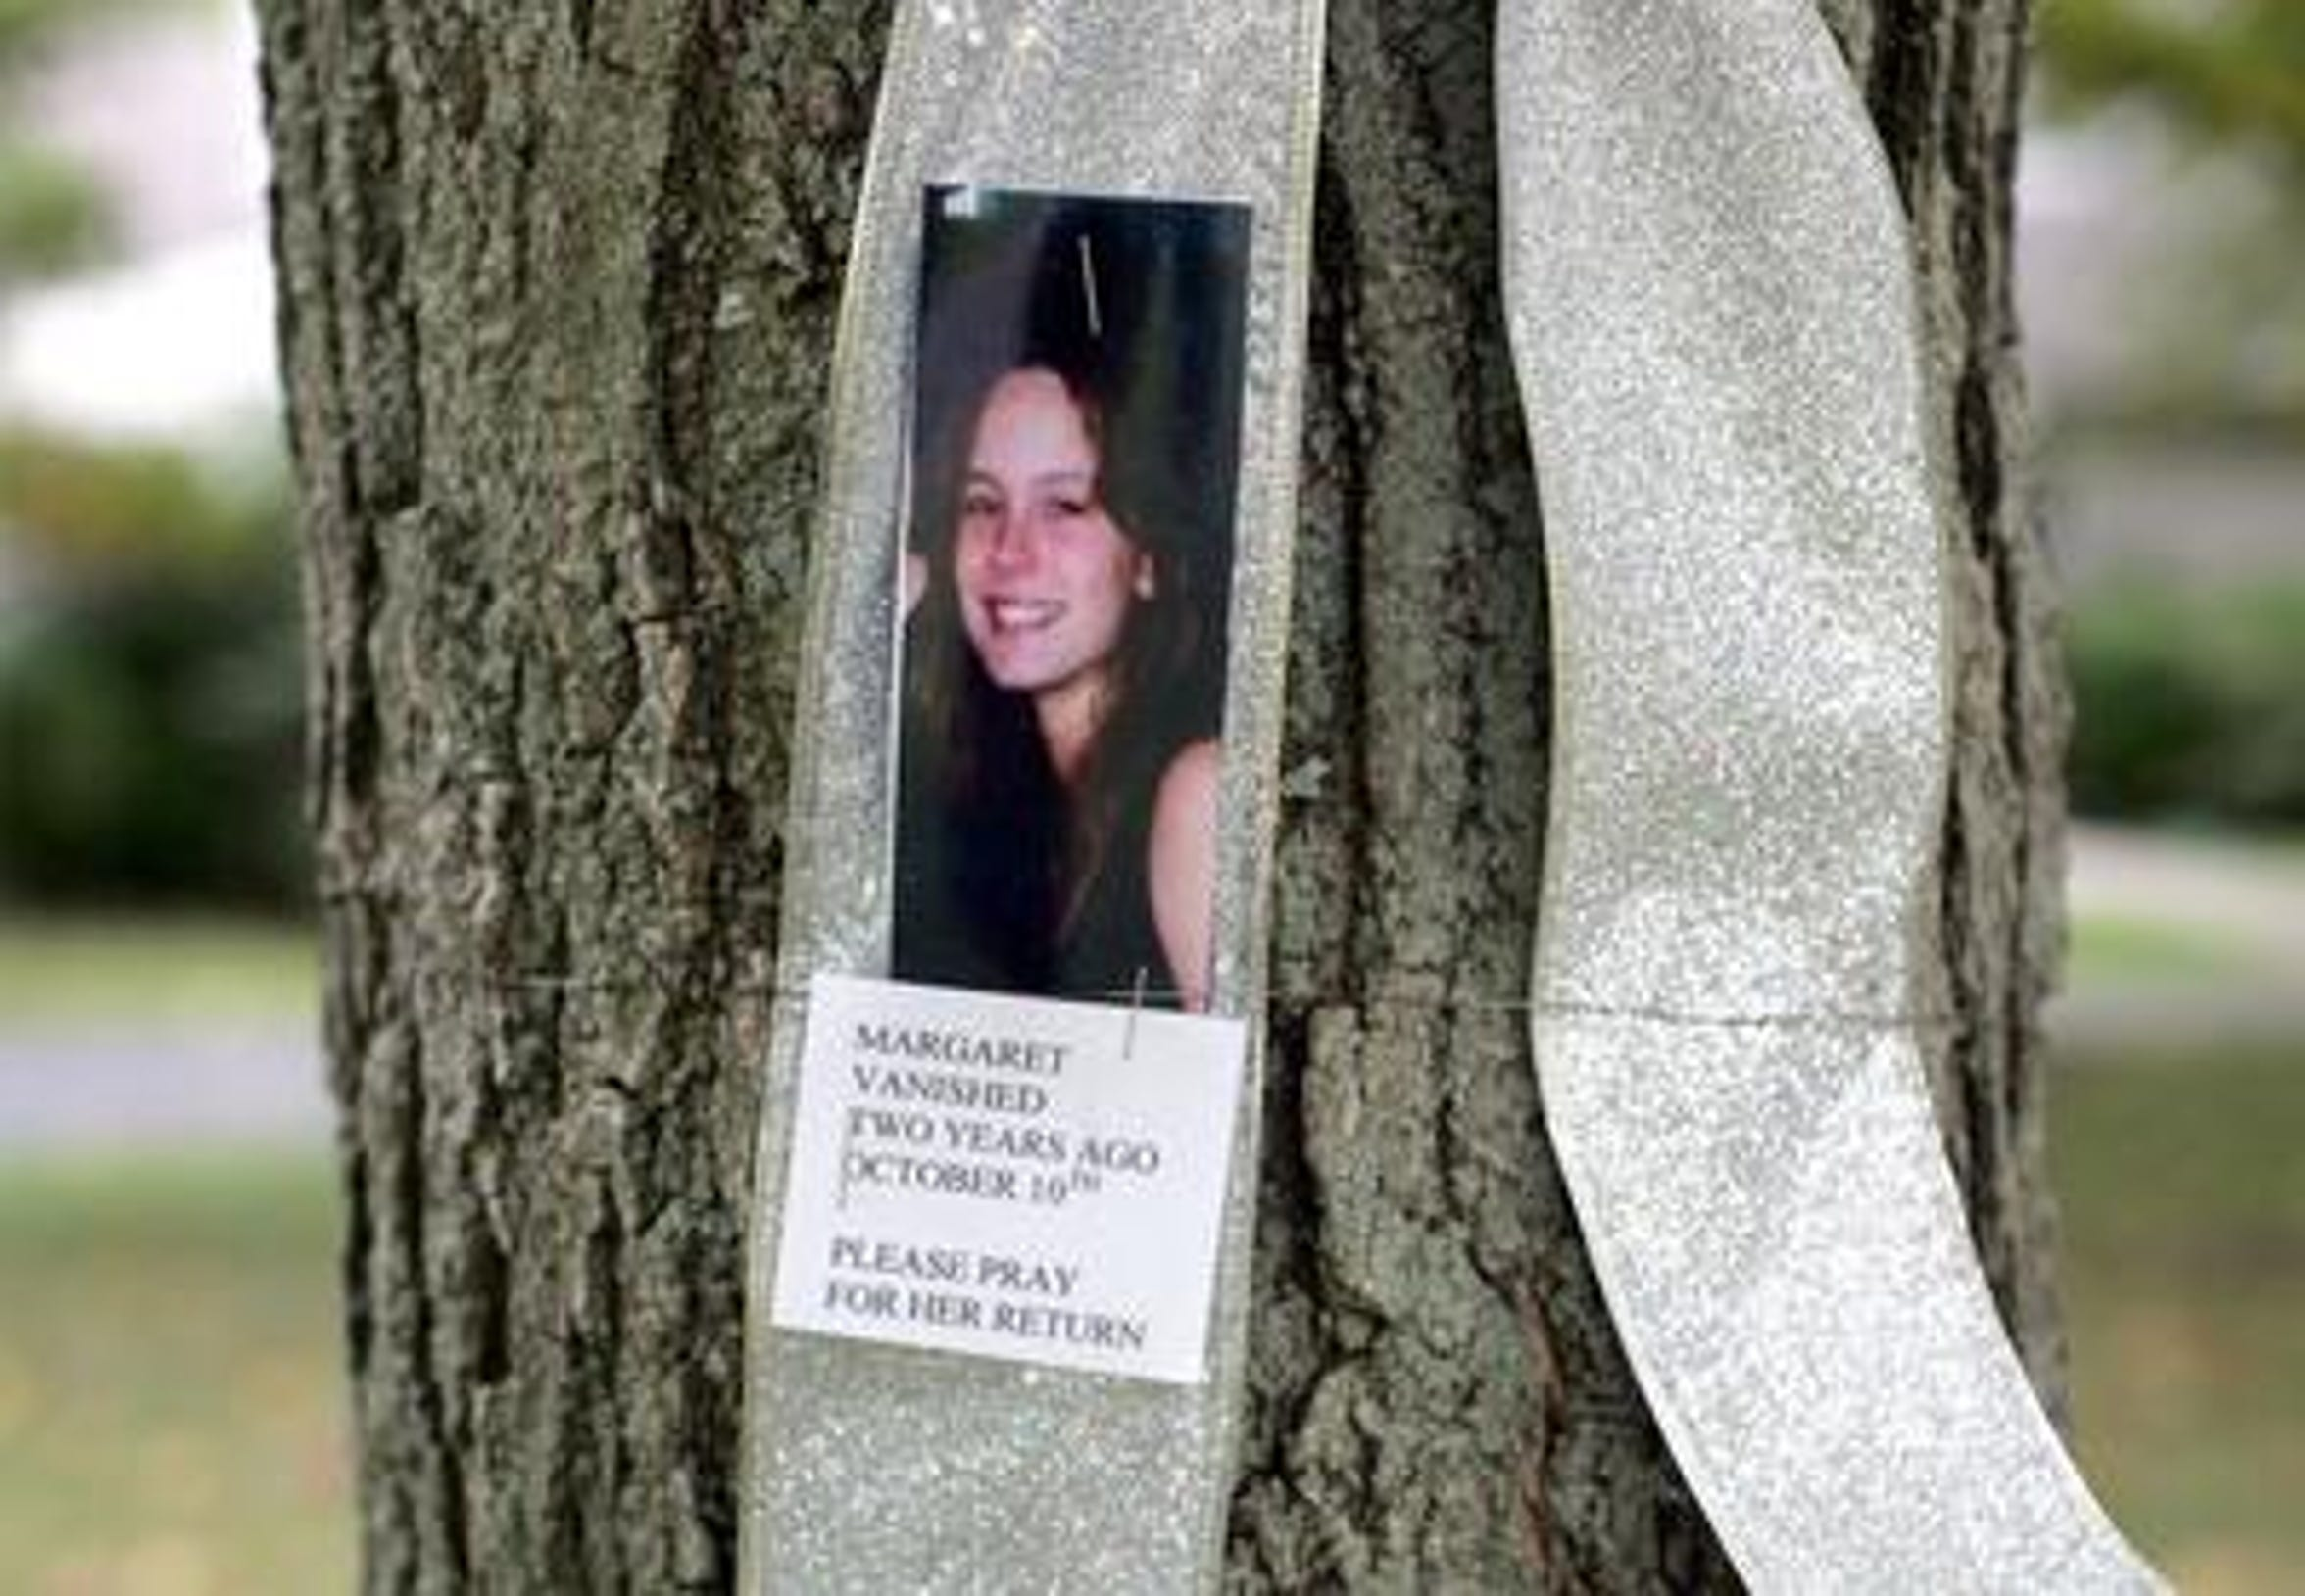 Every year silver ribbons with the picture of Margaret Haddican-McEnroe, who disappeared from her Warren Township home October 10, 2006, have been posted around her hometown of Warren to mark the anniversary of her disappearance.